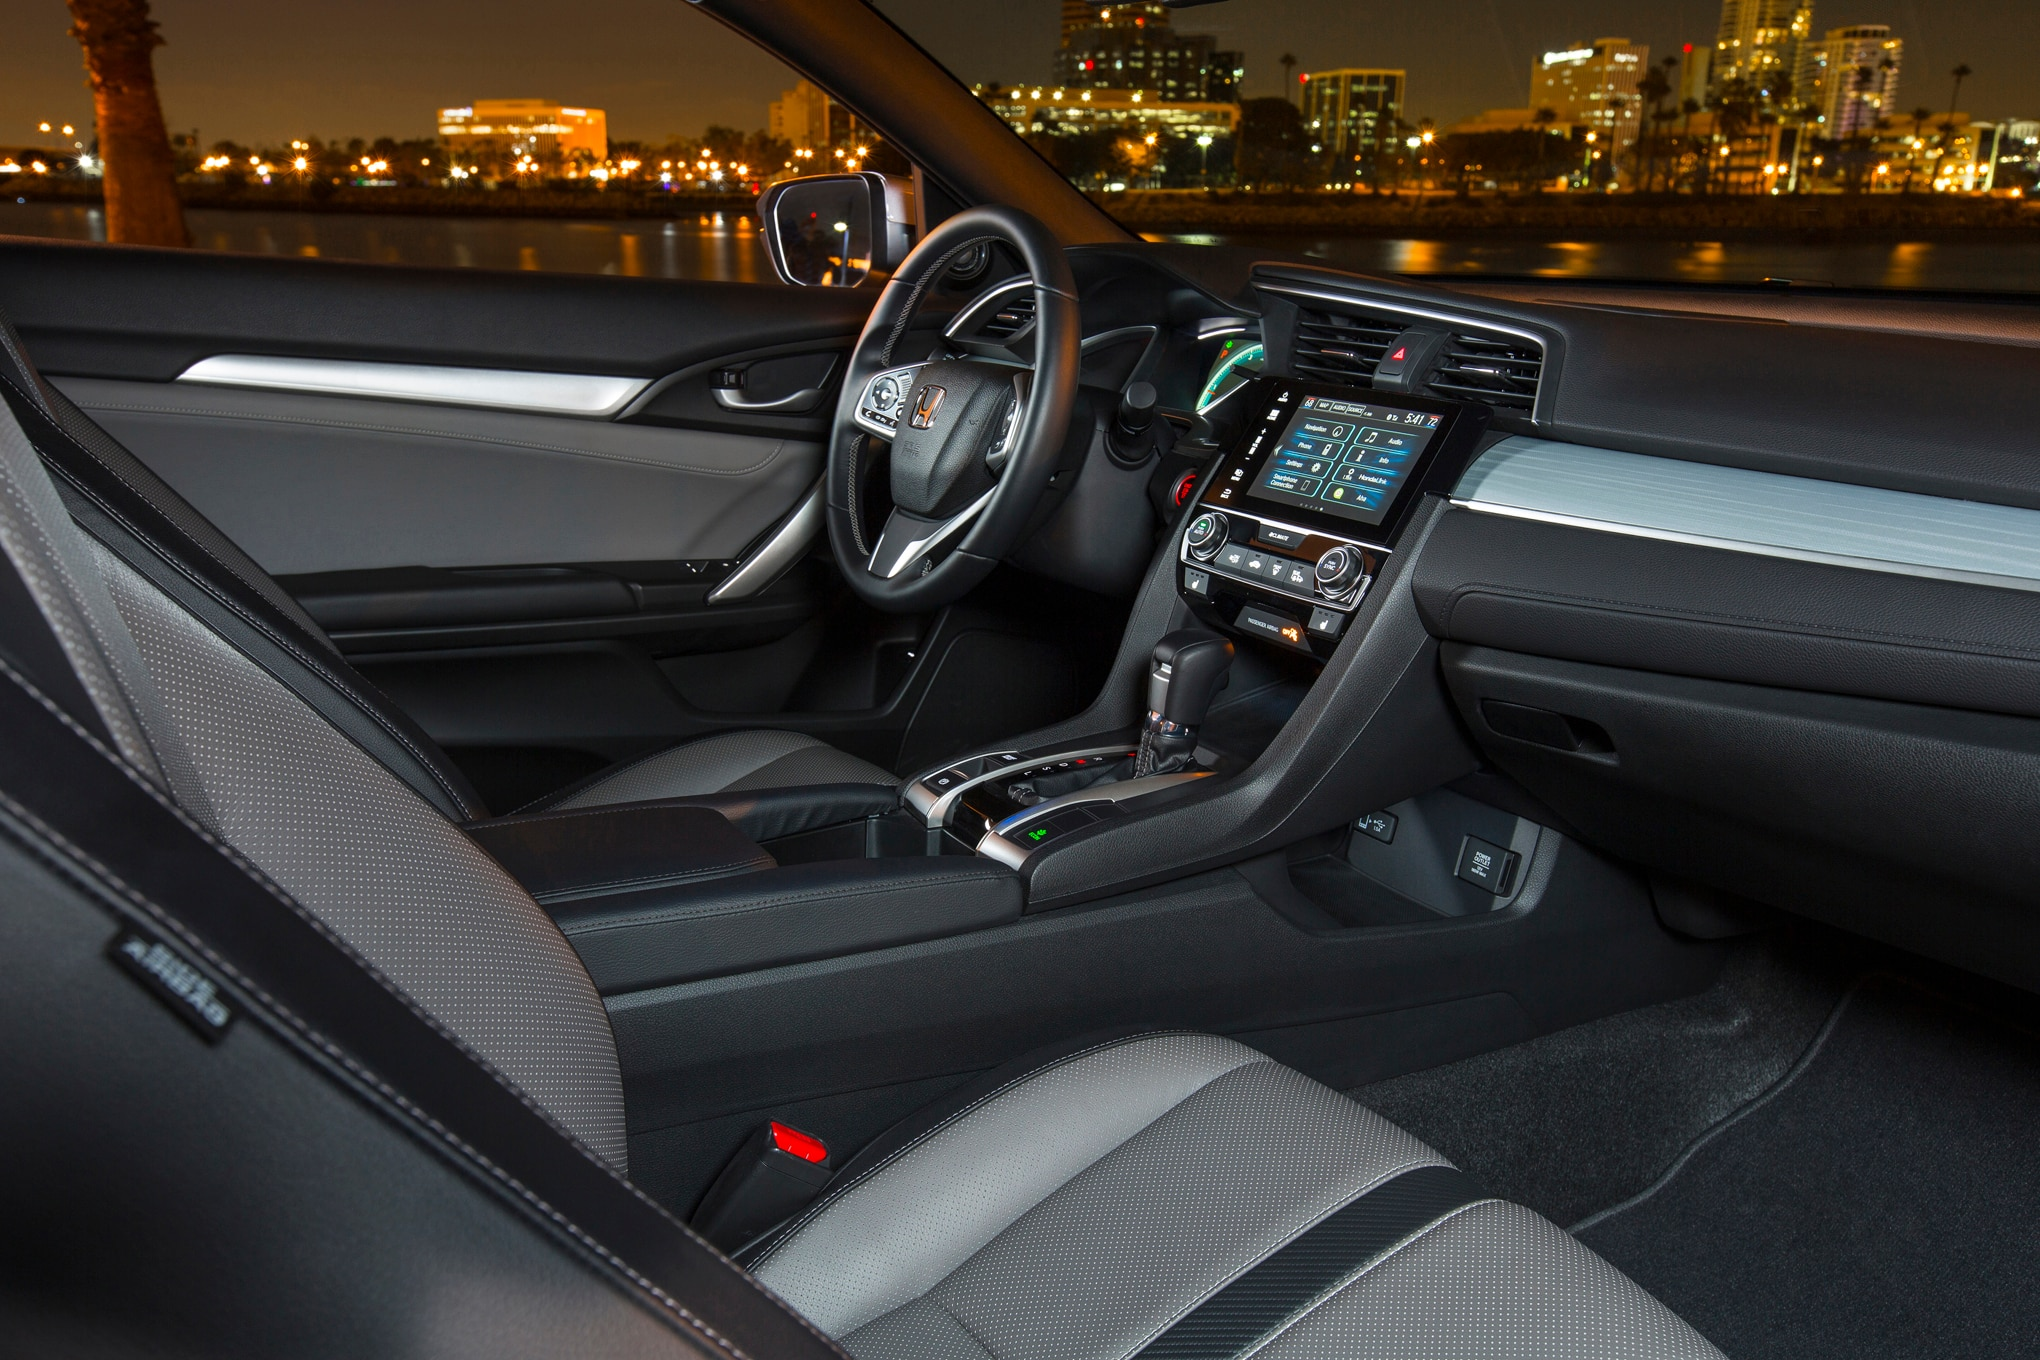 2016 honda civic coupe pricing detailed starts at 19 885 - 2016 honda civic si coupe interior ...